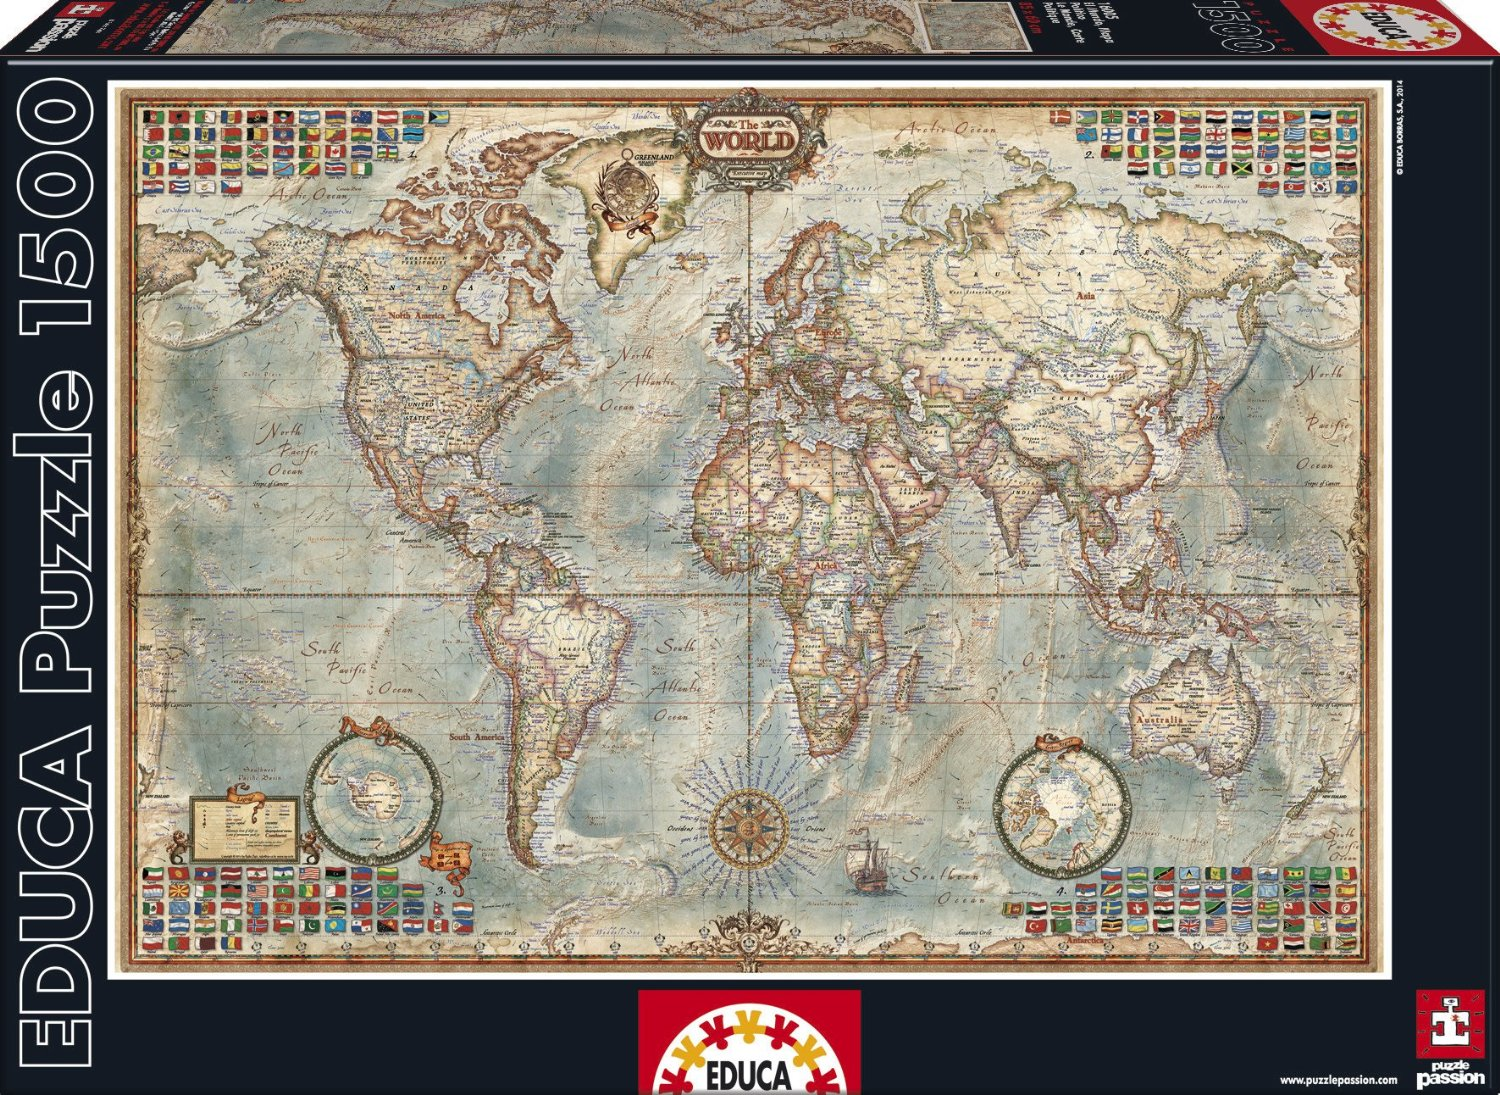 Puzzle the world political map educa 16005 1500 pieces jigsaw the world political map gumiabroncs Gallery